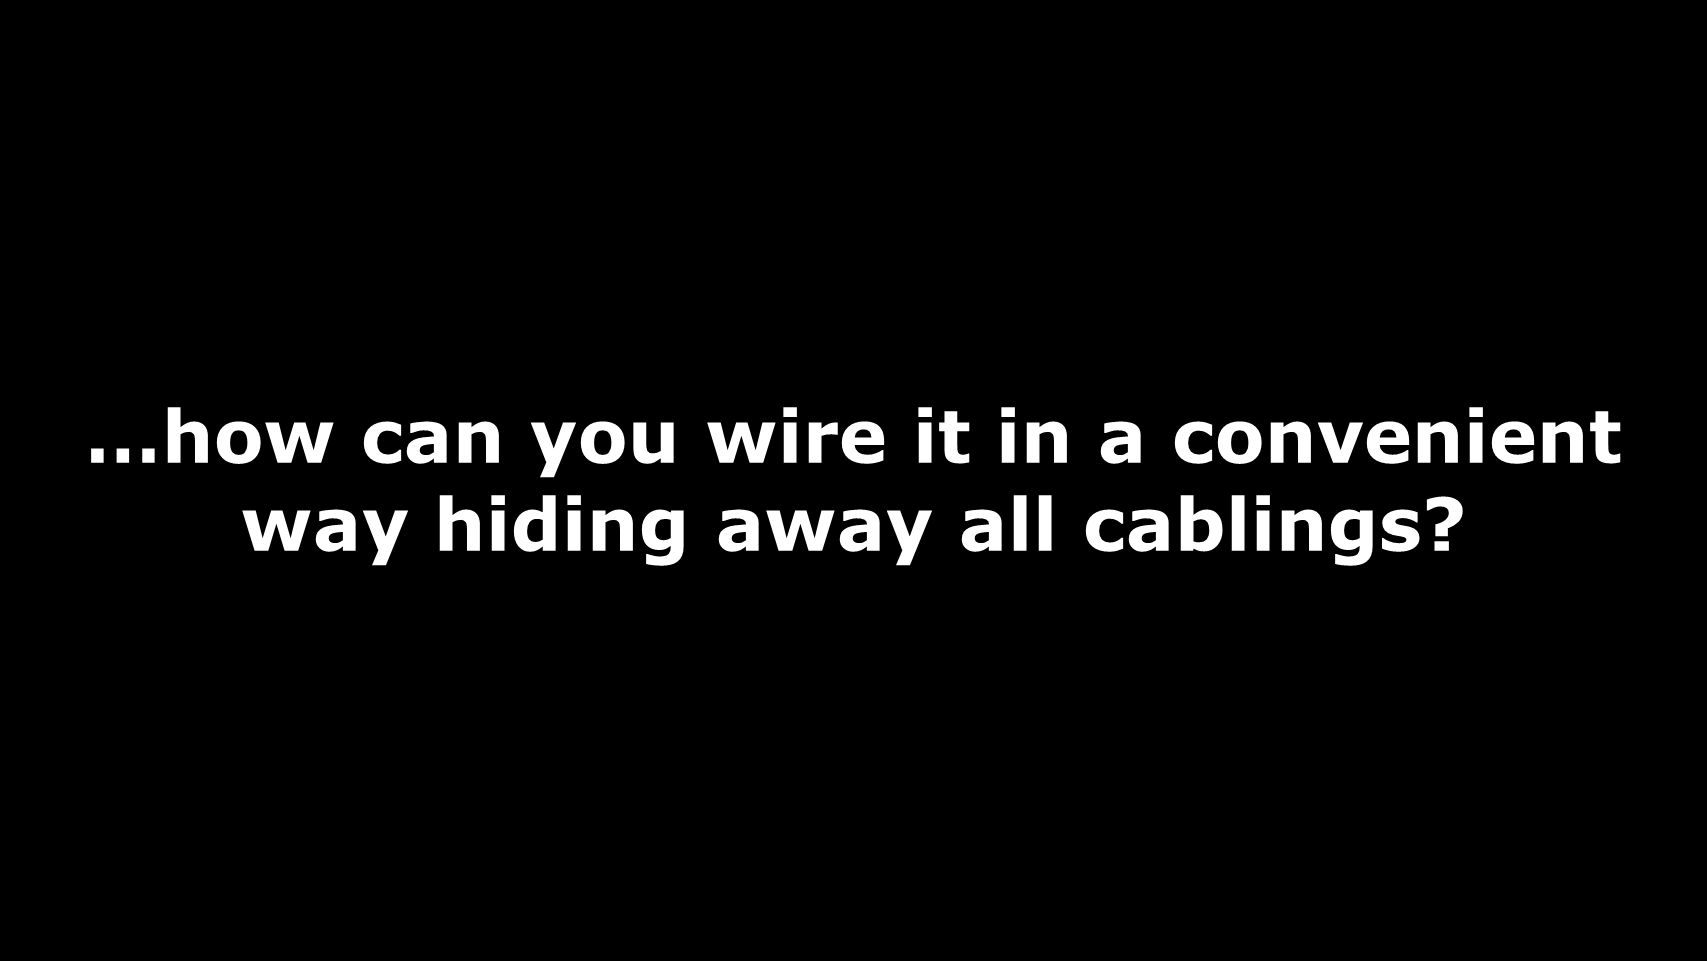 …how can you wire it in a convenient way hiding away all cablings